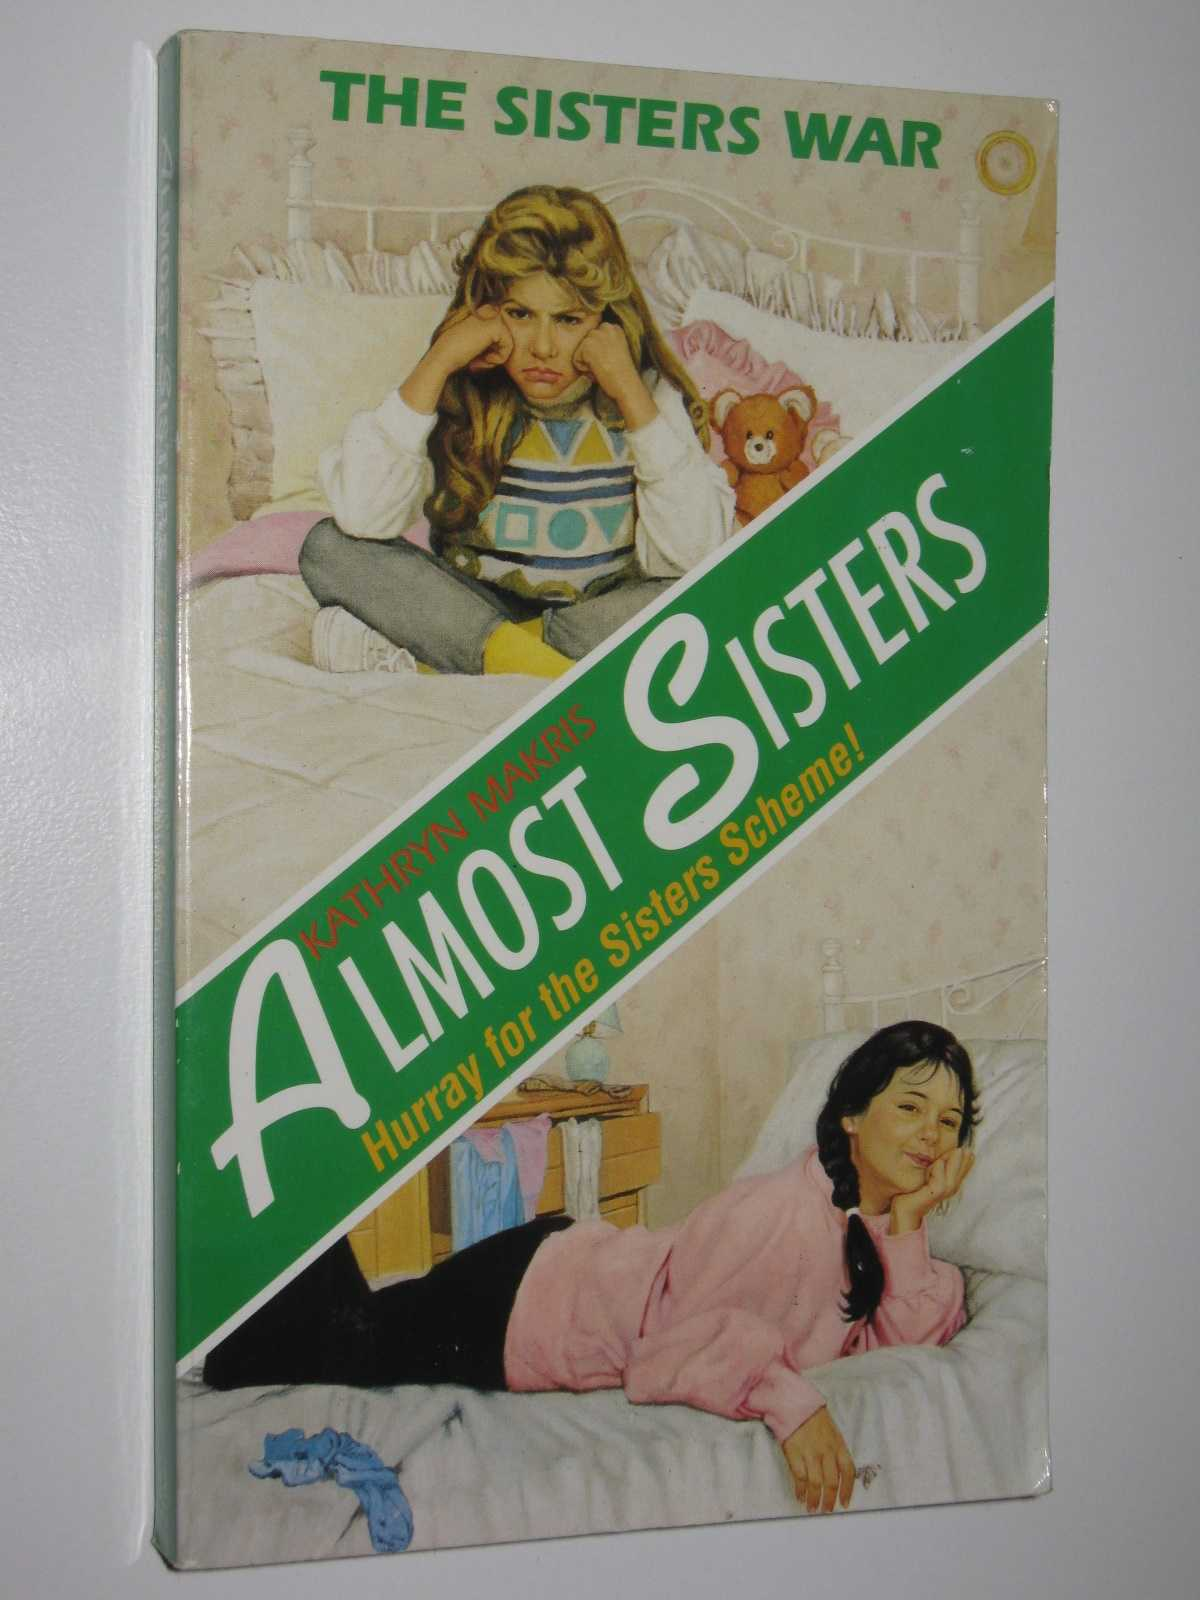 The Sisters War - Almost Sisters Series, Makris, Kathryn